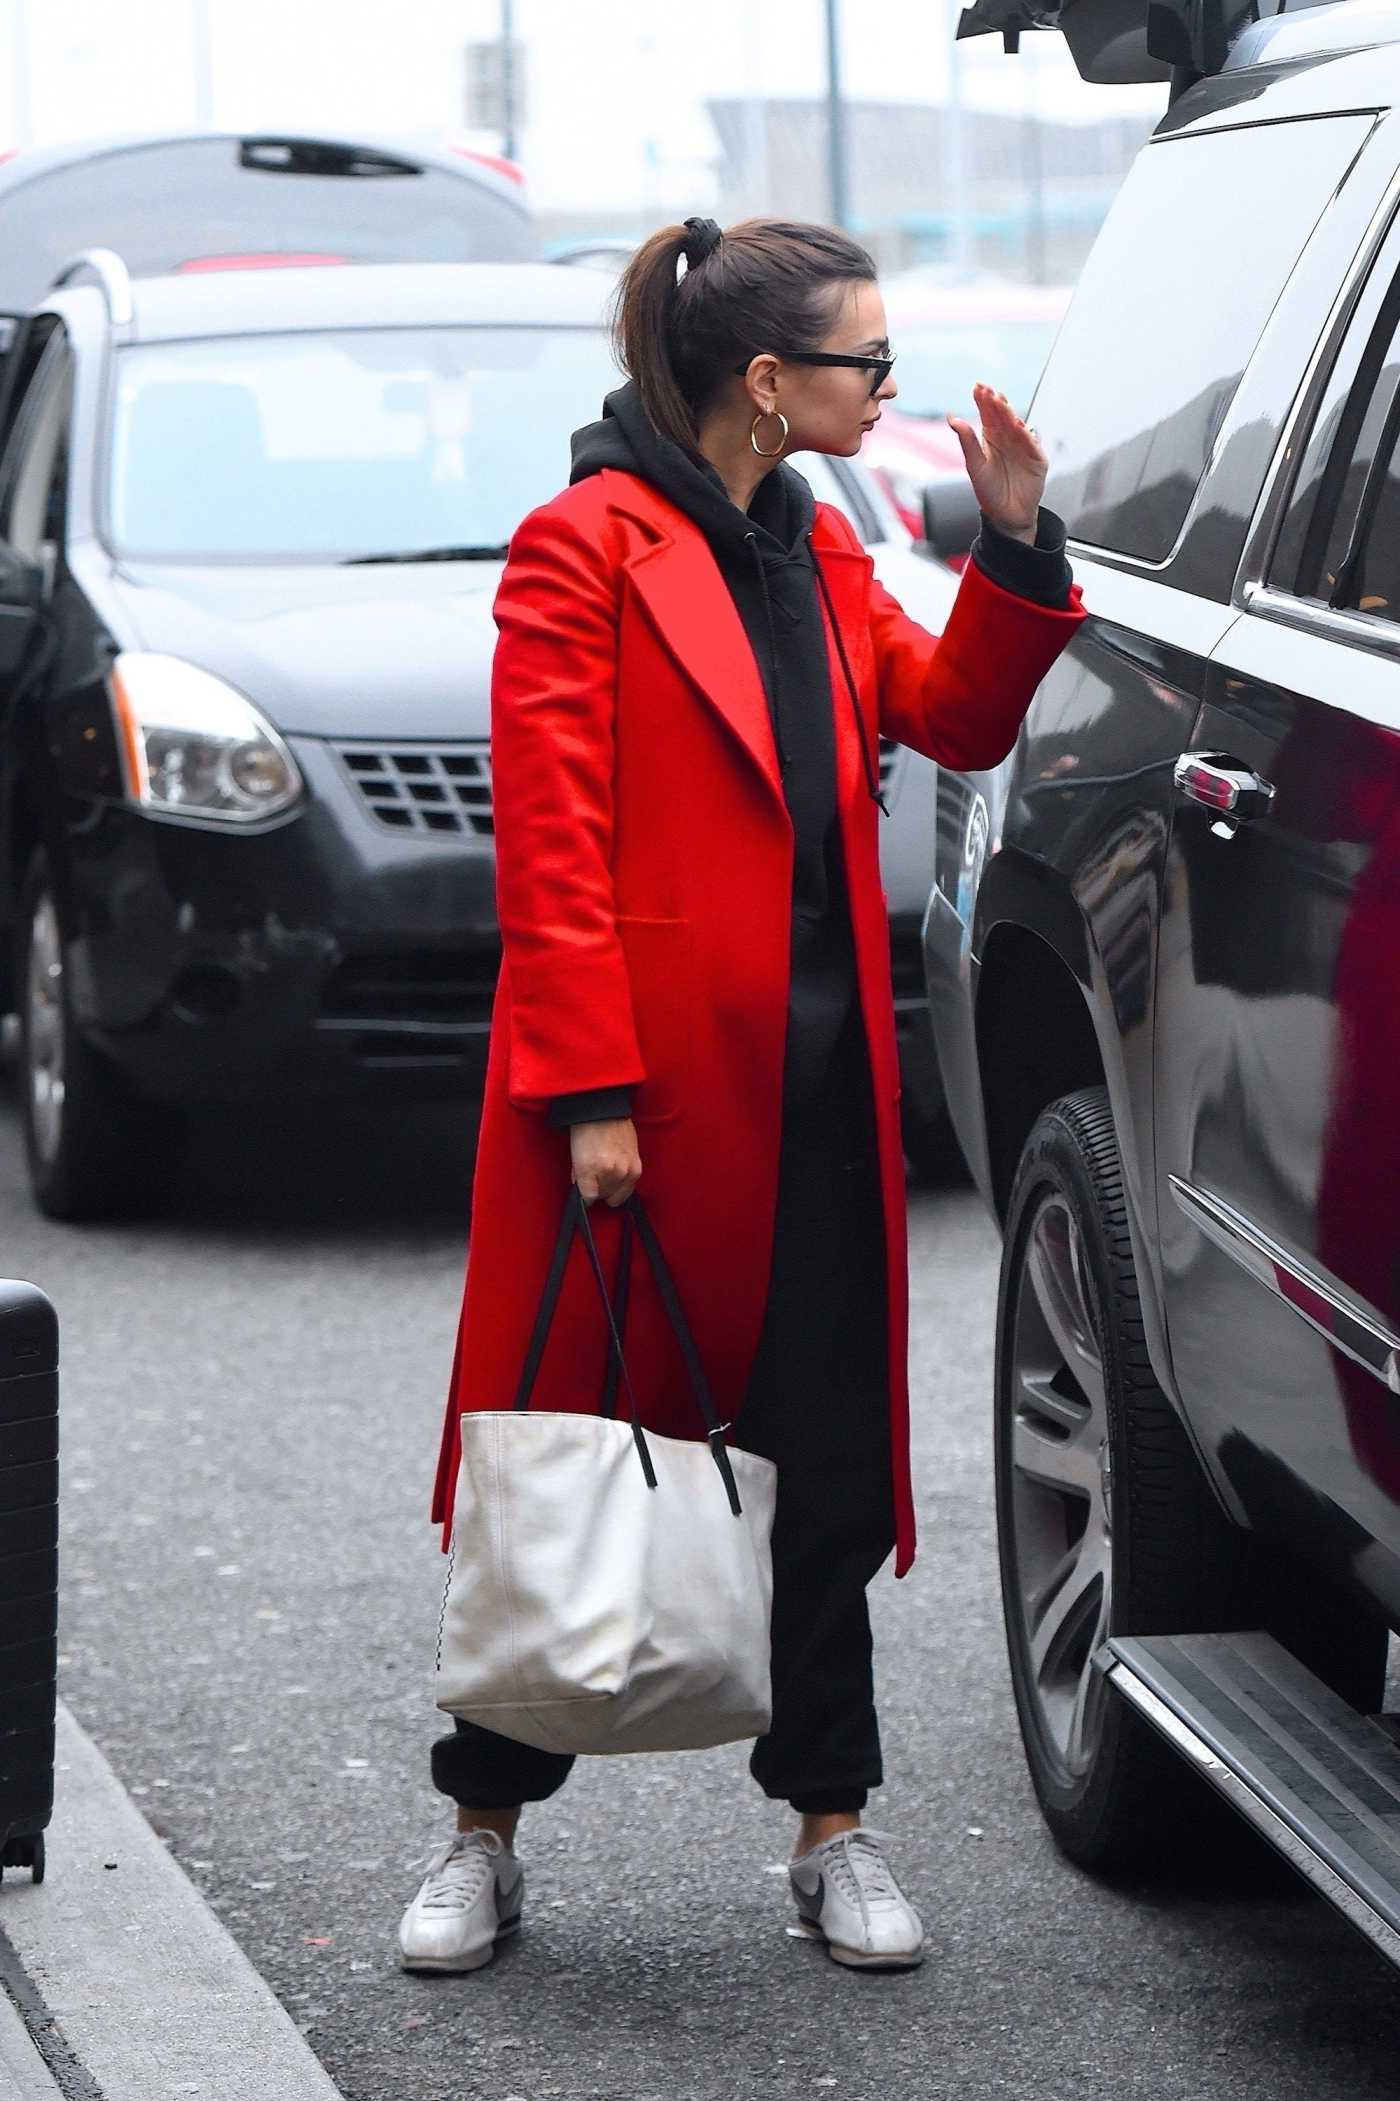 Emily Ratajkowski in a Red Coat Arrives at JFK Airport in New York 02/18/2020